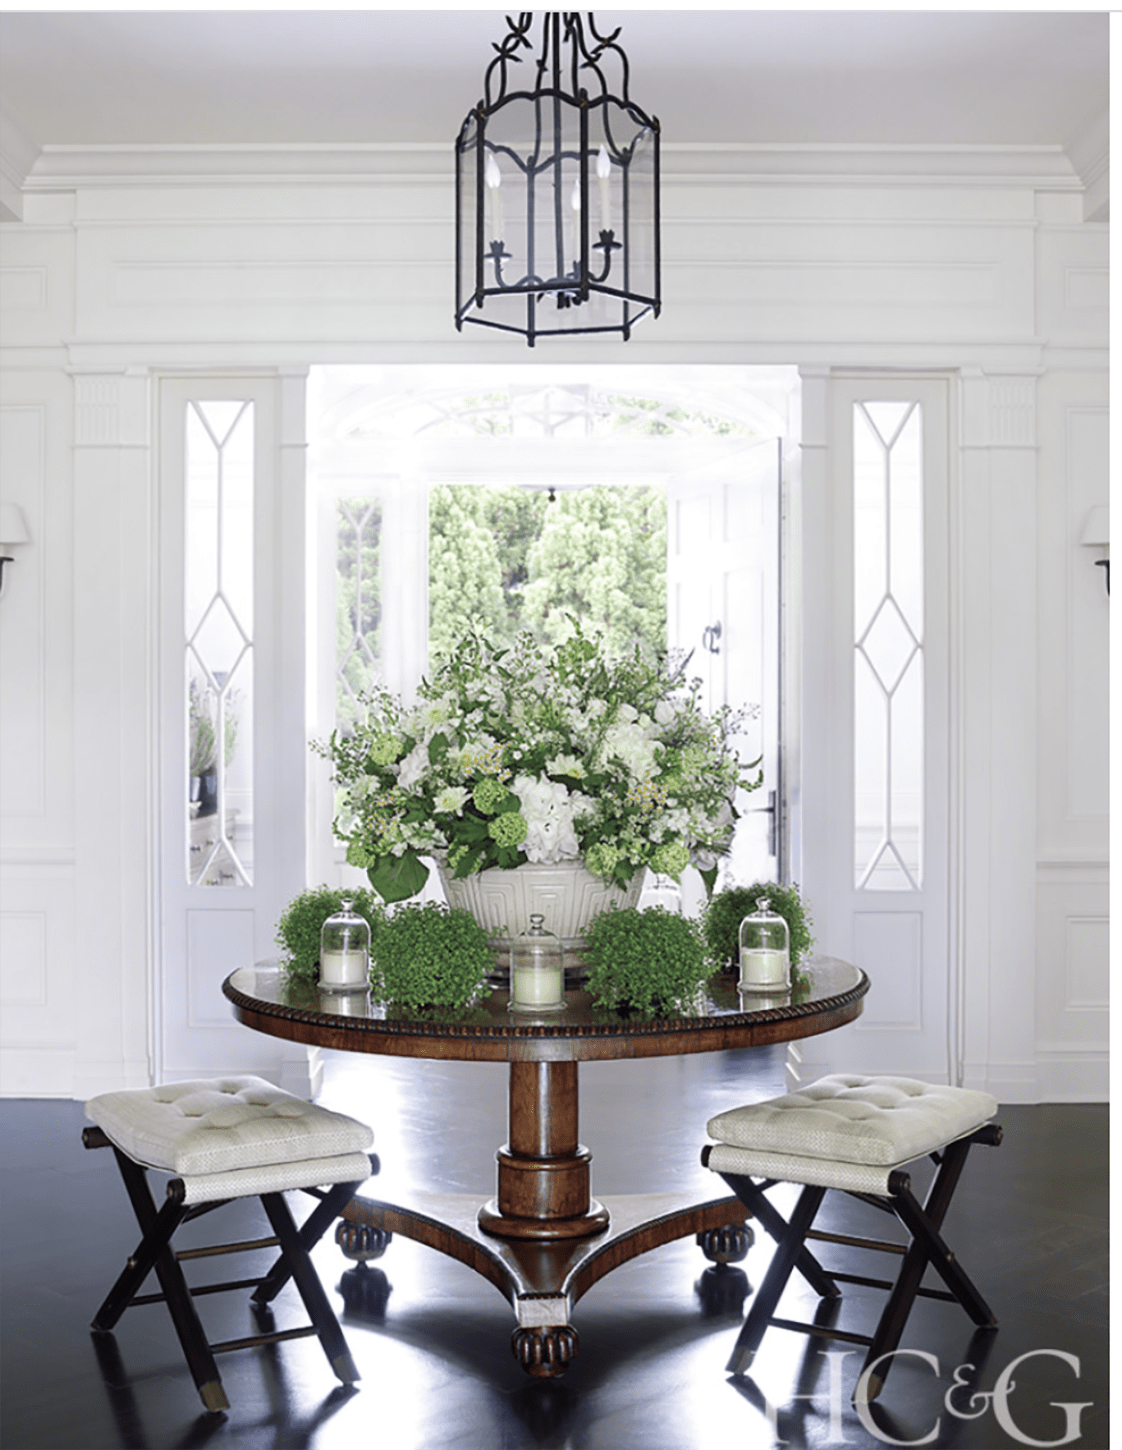 Hampton Cottages & Gardens home with round entry table on Cindy Hattersley's blog